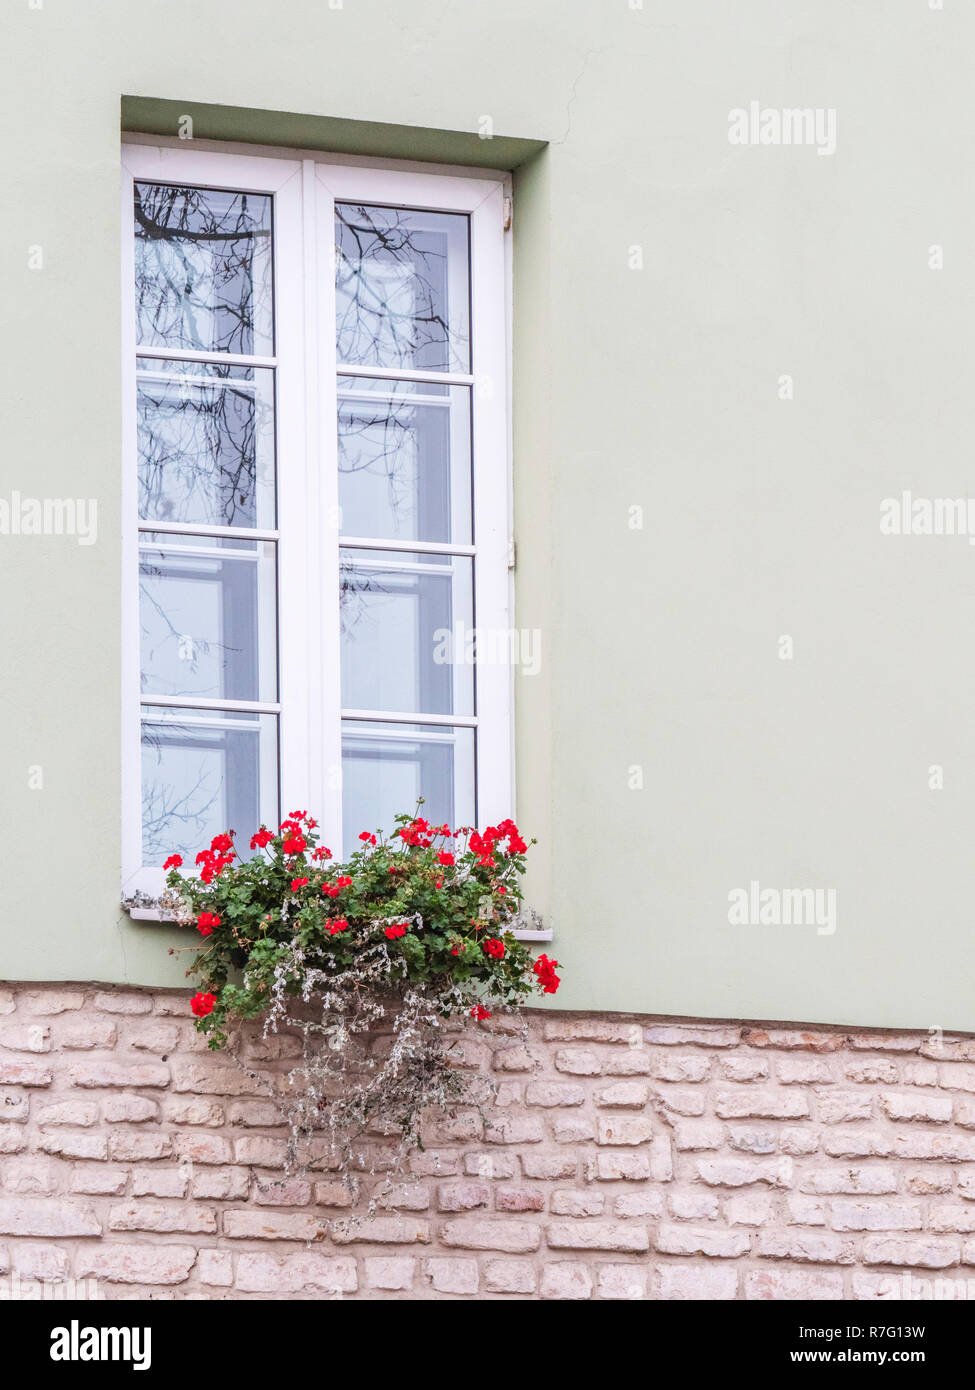 Typical european window with flowers. Flower box below a windows on an apartment building. - Stock Image